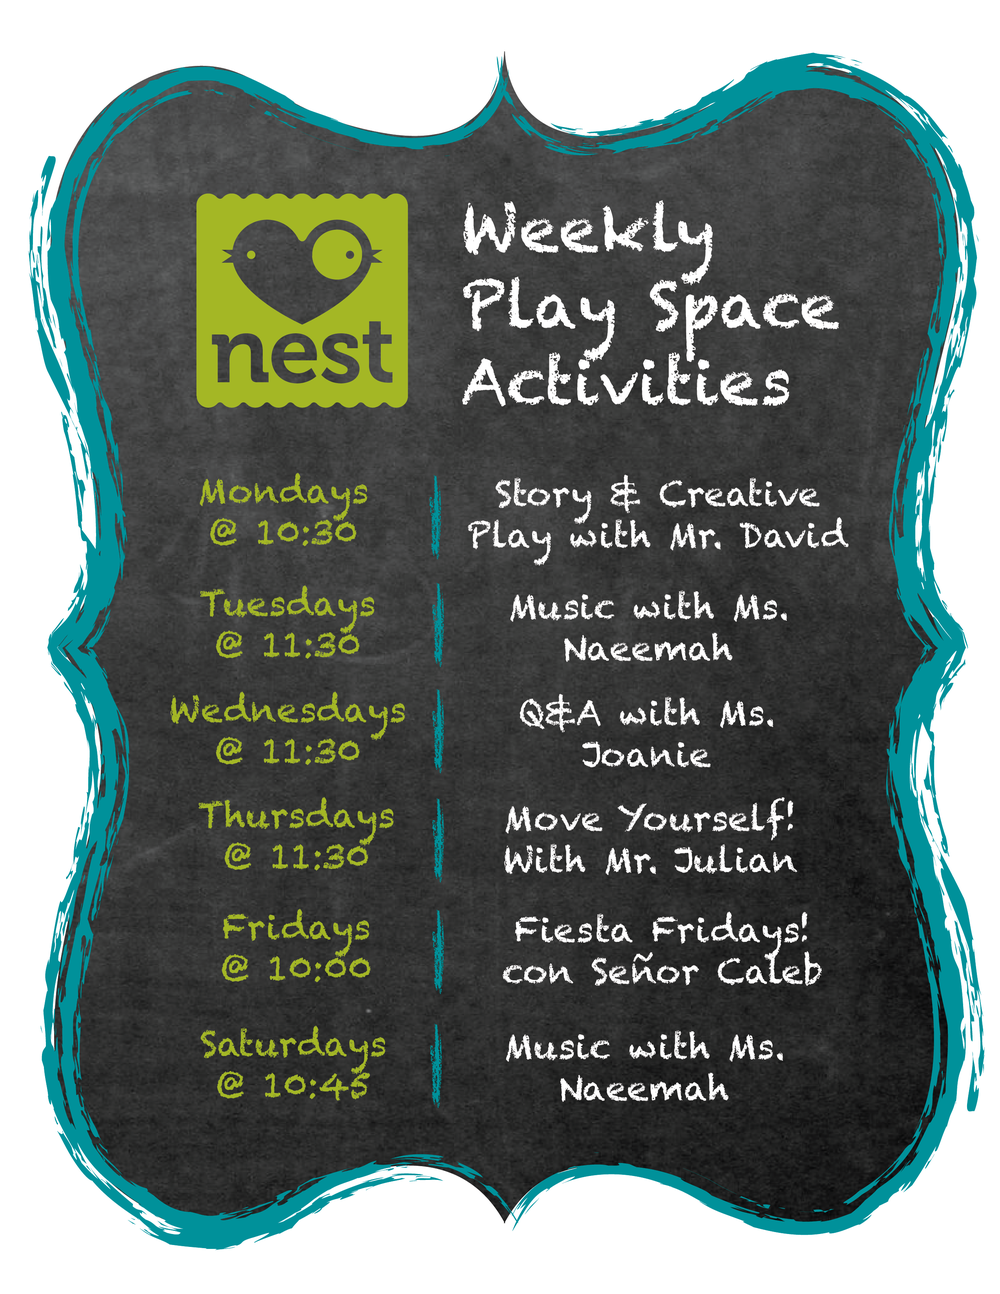 WeeklyPlayspaceActivities-03 copy-01.png